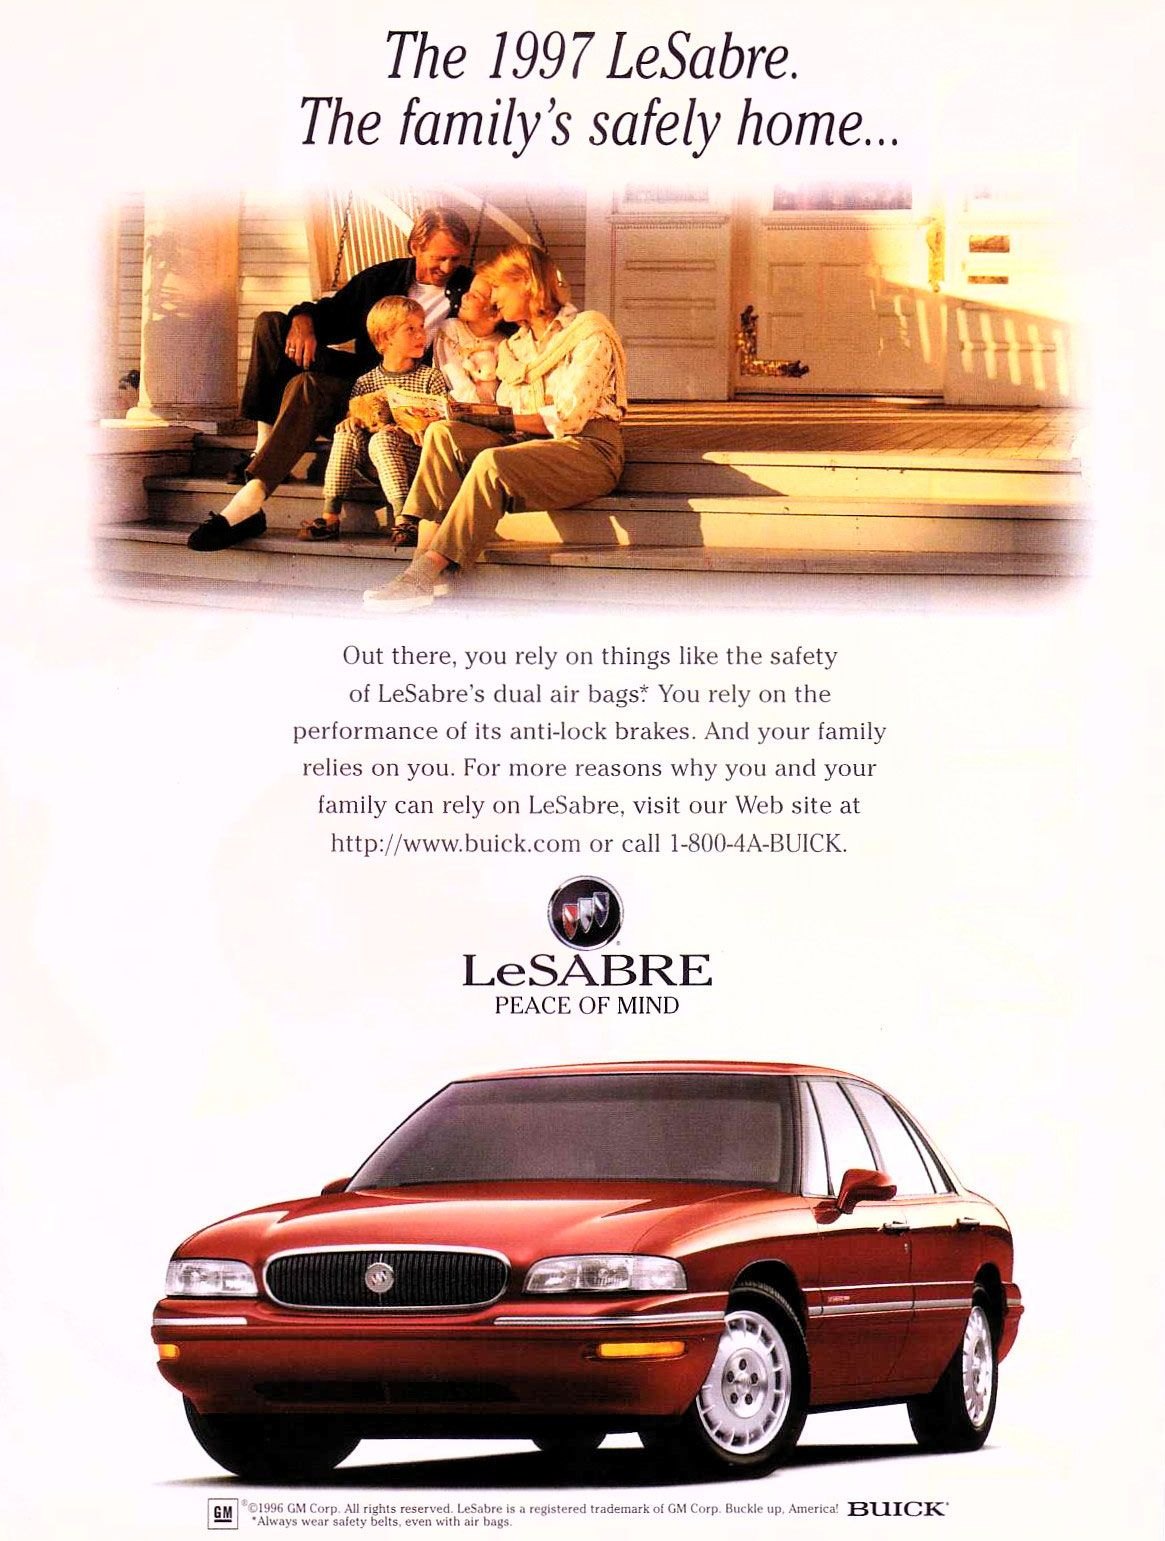 The 1997 Buick LeSabre. The family's safely home... Out there, you rely on things like the safety of LeSabre's dual air bags': You rely on the performance of its anti-lock brakes. And your family relies on you. For more reasons why you and your family can rely on LeSabre, visit our Web site at http://www.buick.com or call 1-800-4A-BUICK. LeSABRE PEACE OF MIND